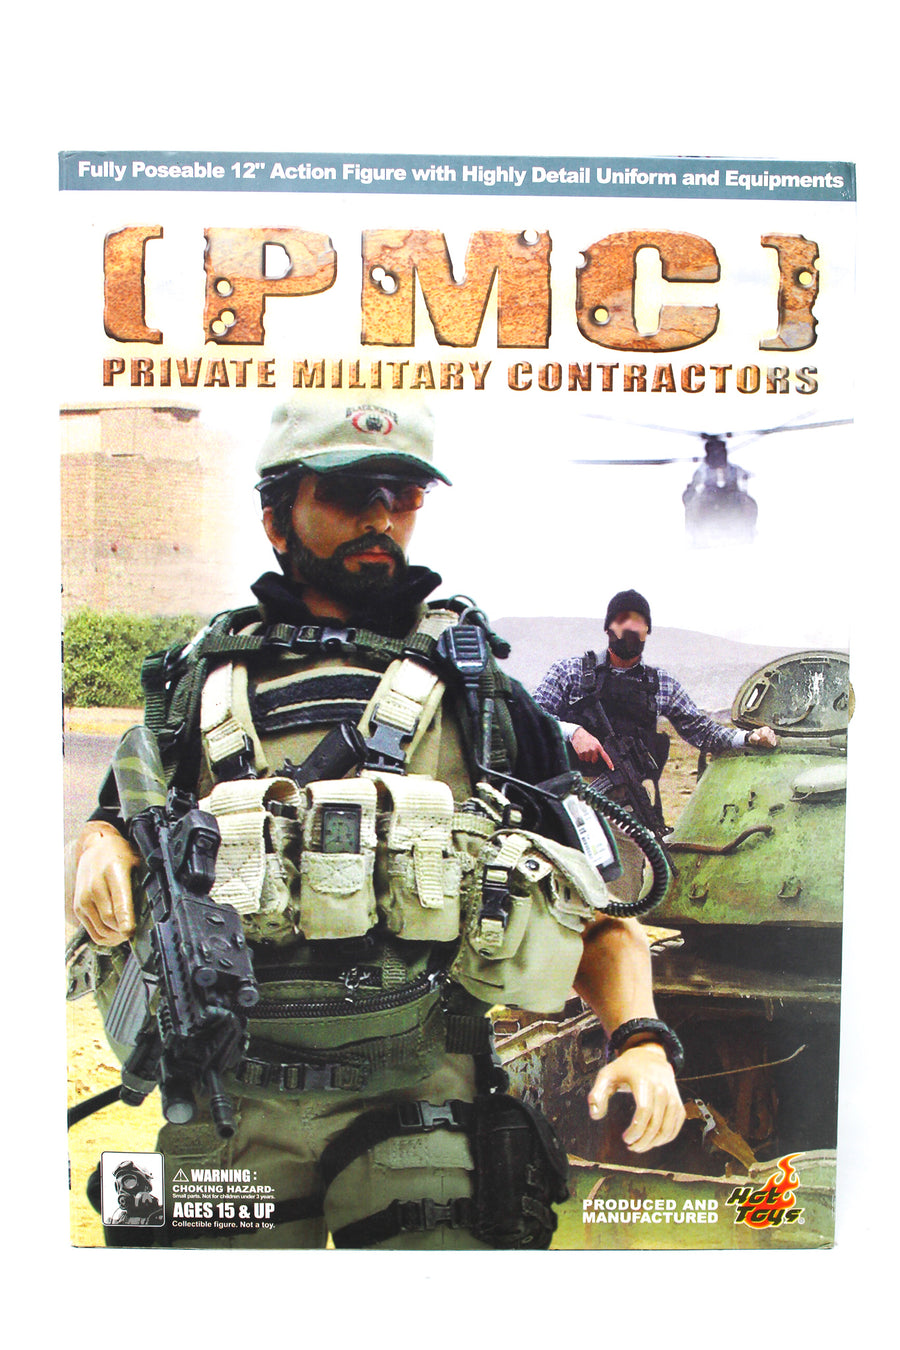 Private Military Contractor - Black Radio w/Hand Mic